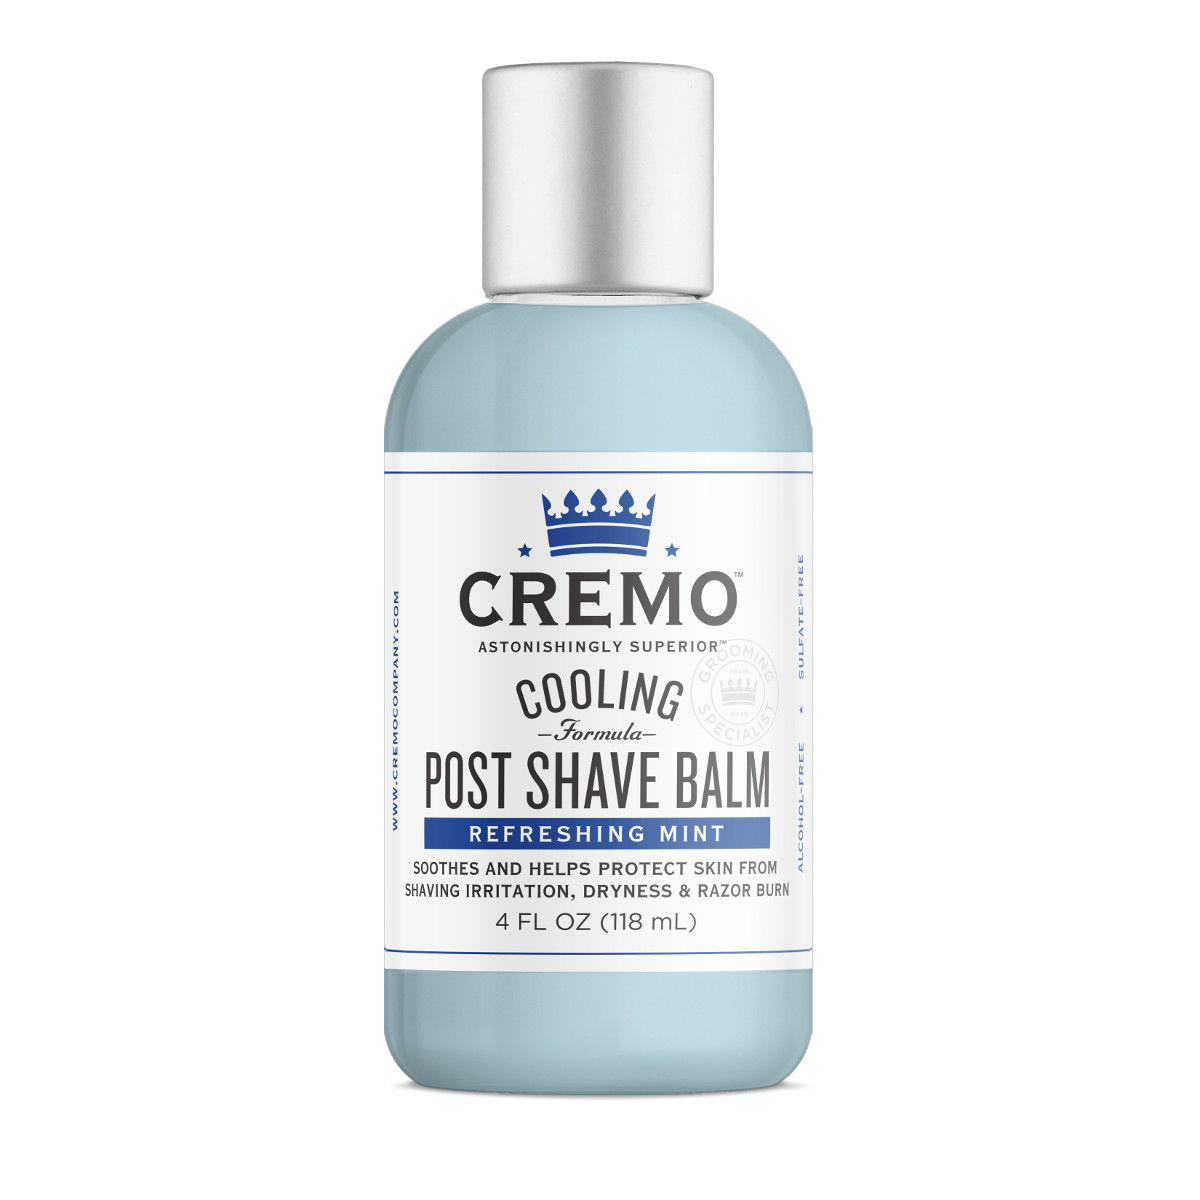 Cremo - Refreshing Mint - Balm image